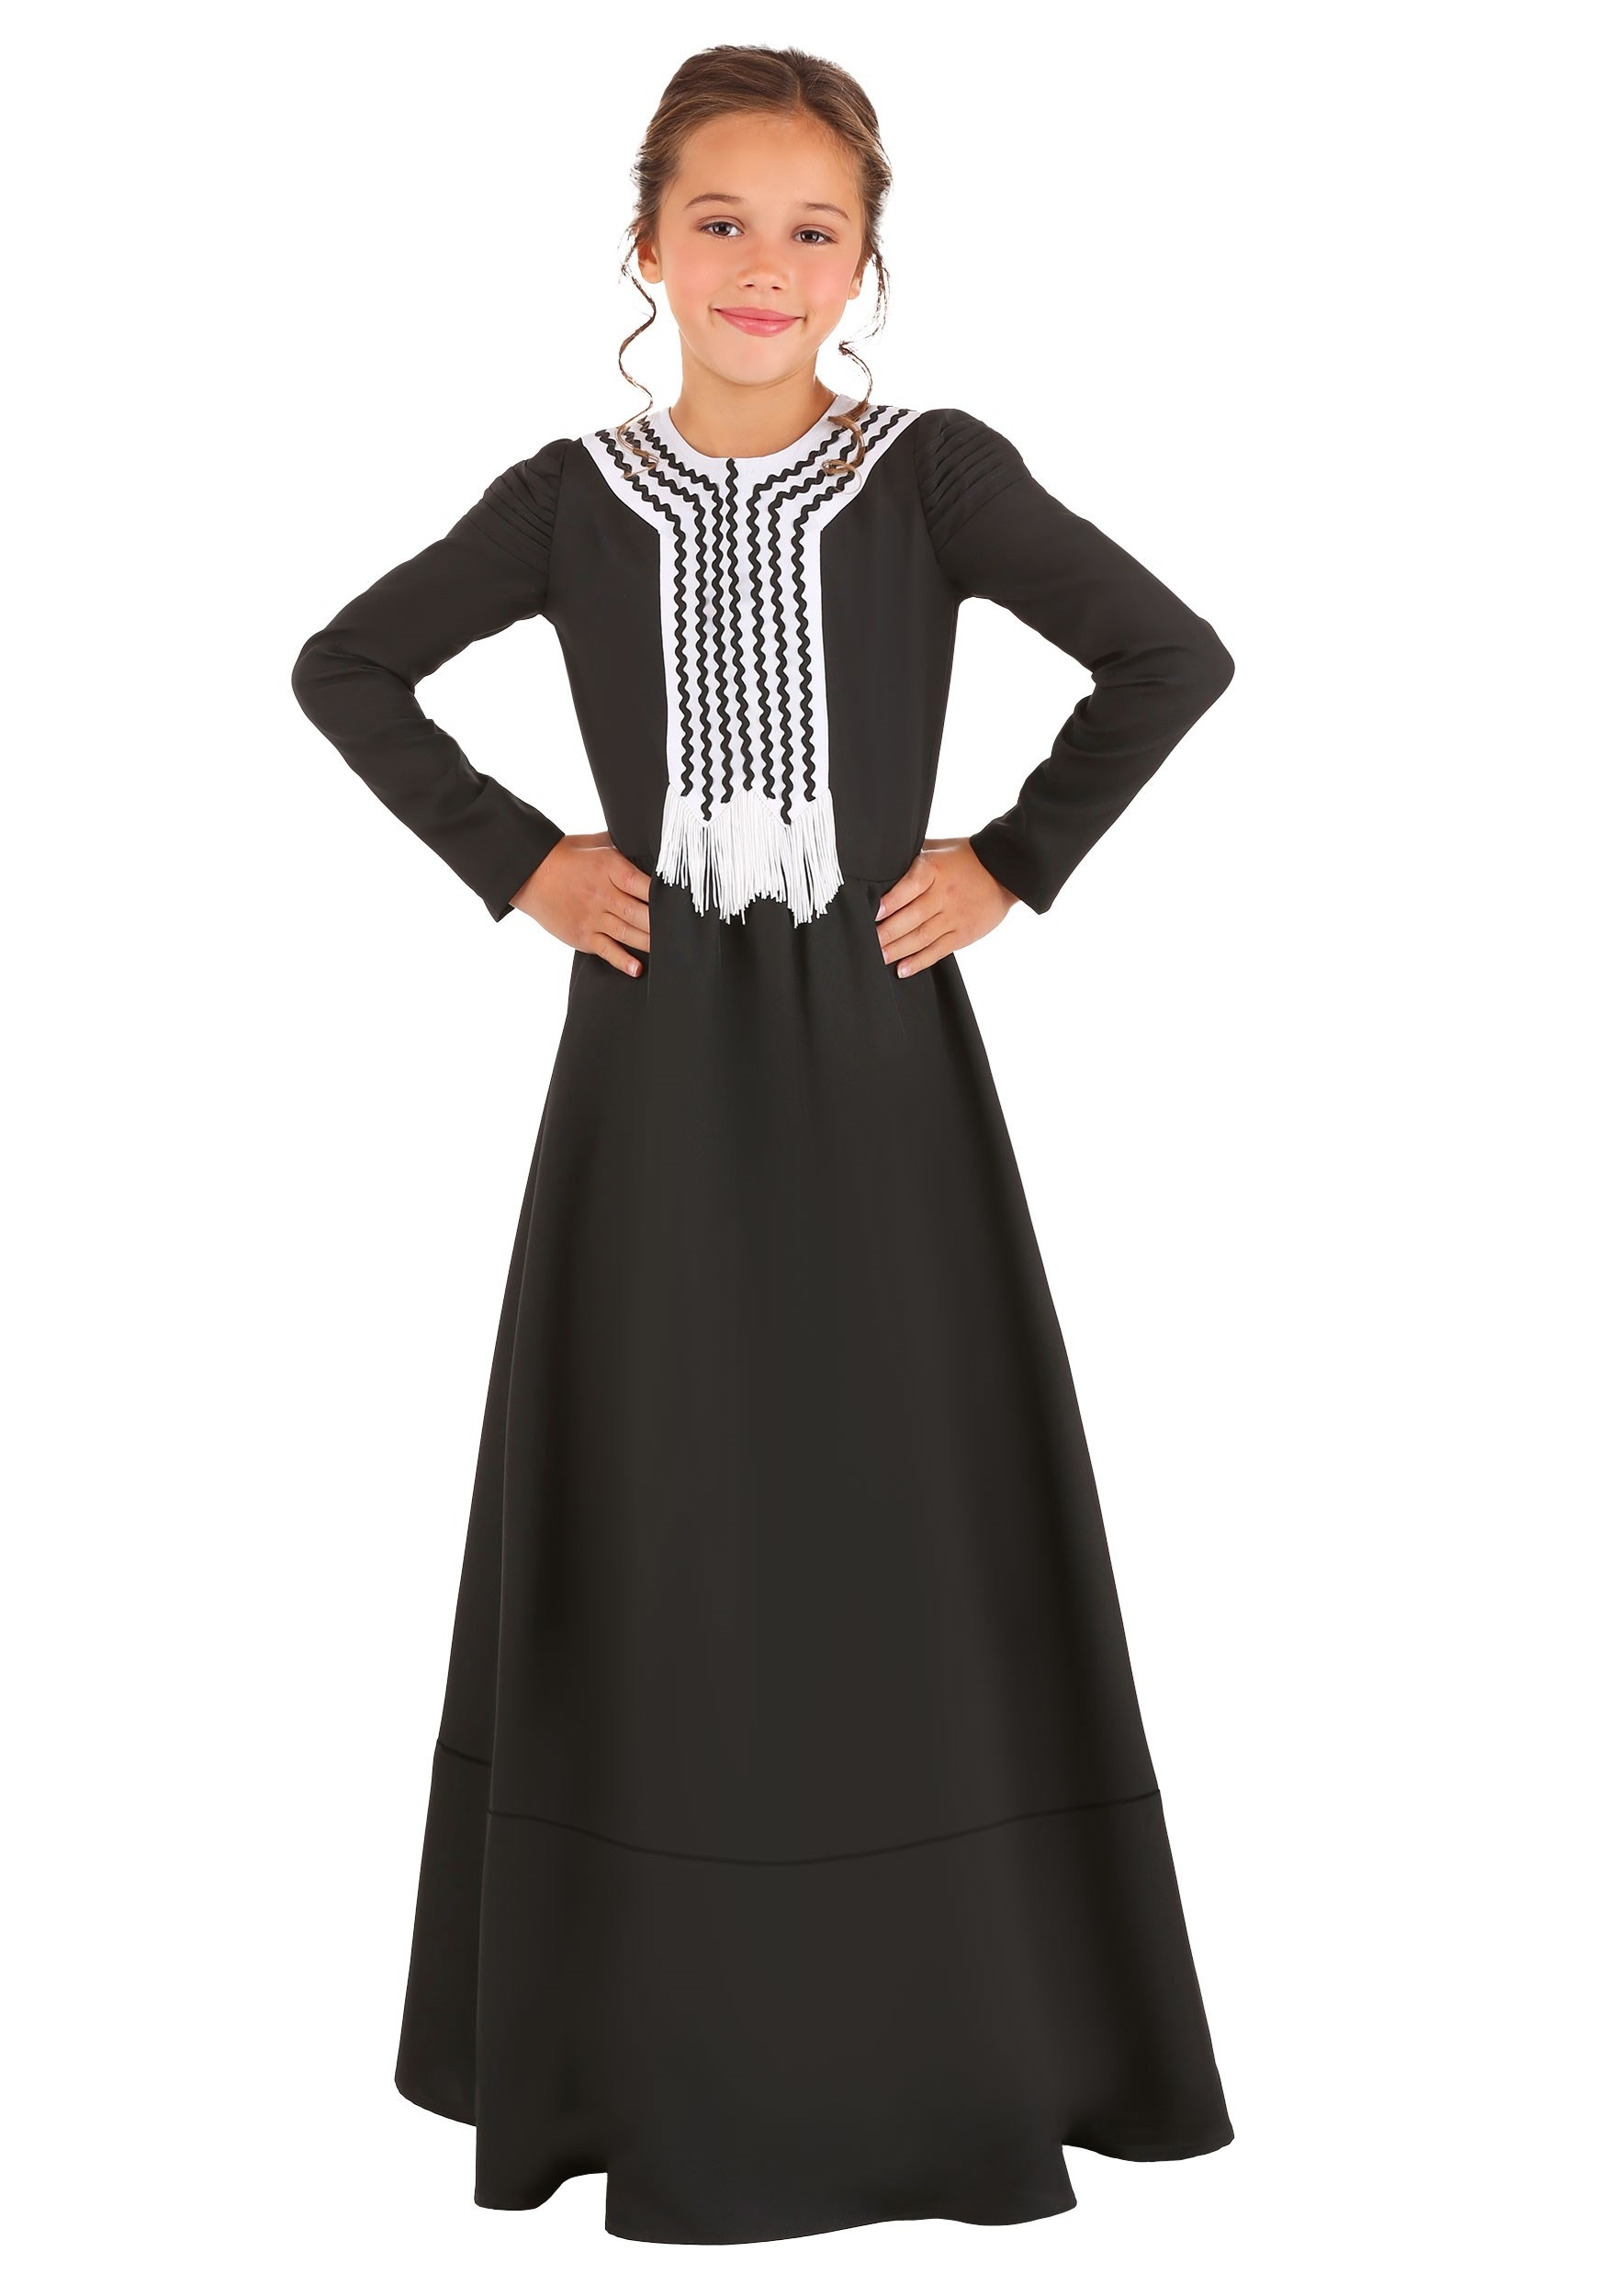 Marie Curie Costume for Girls